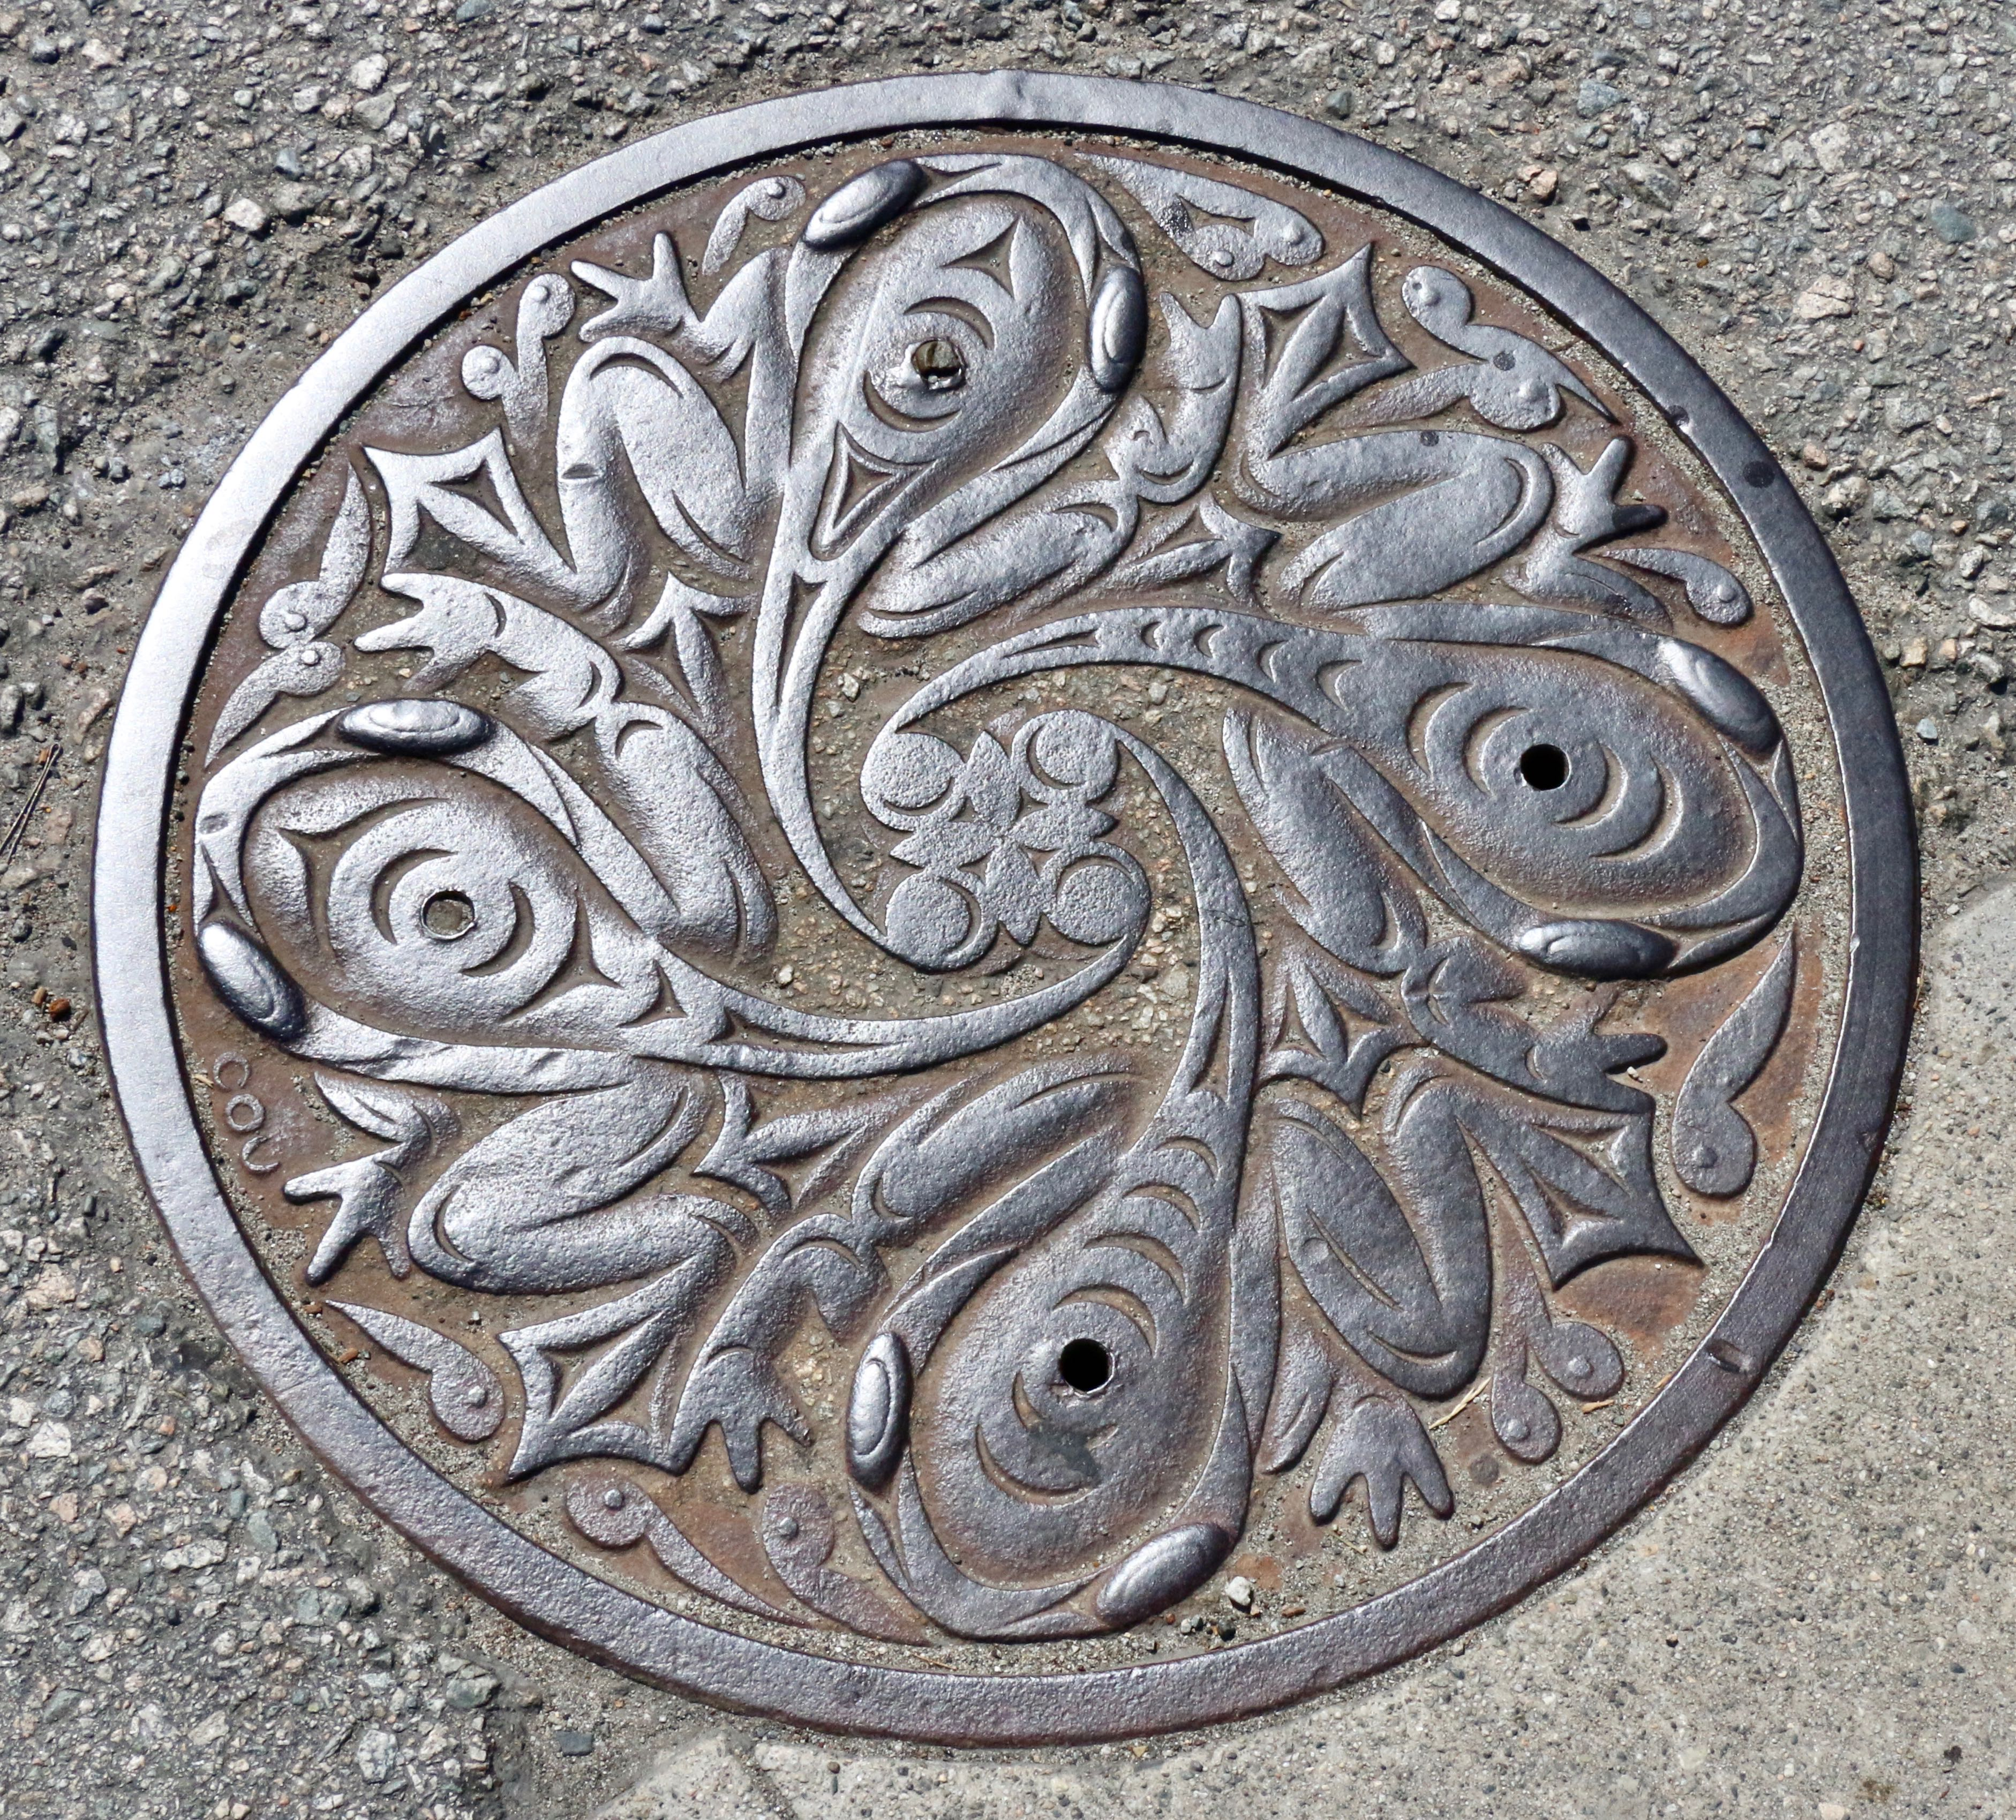 04 native manhole covers